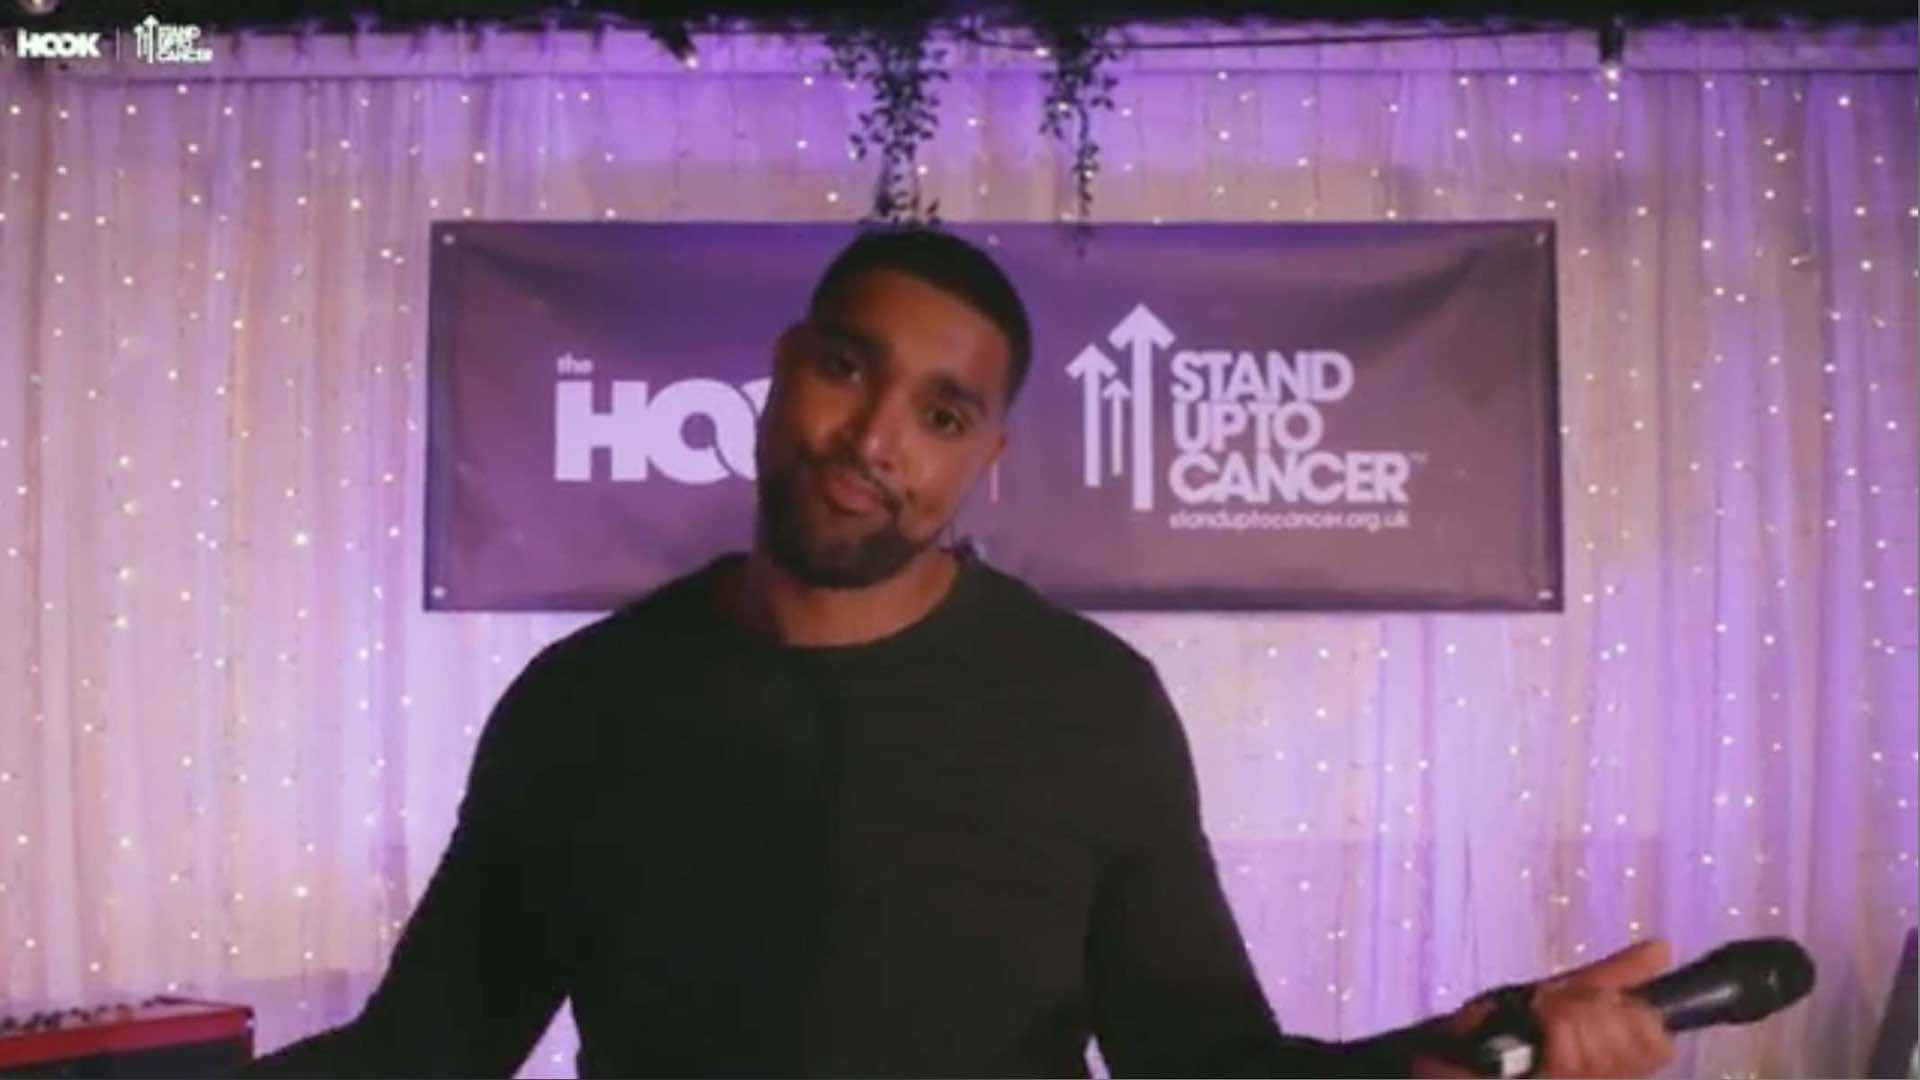 Marcus Bronzy Presenting at the hook x stand up to cancer